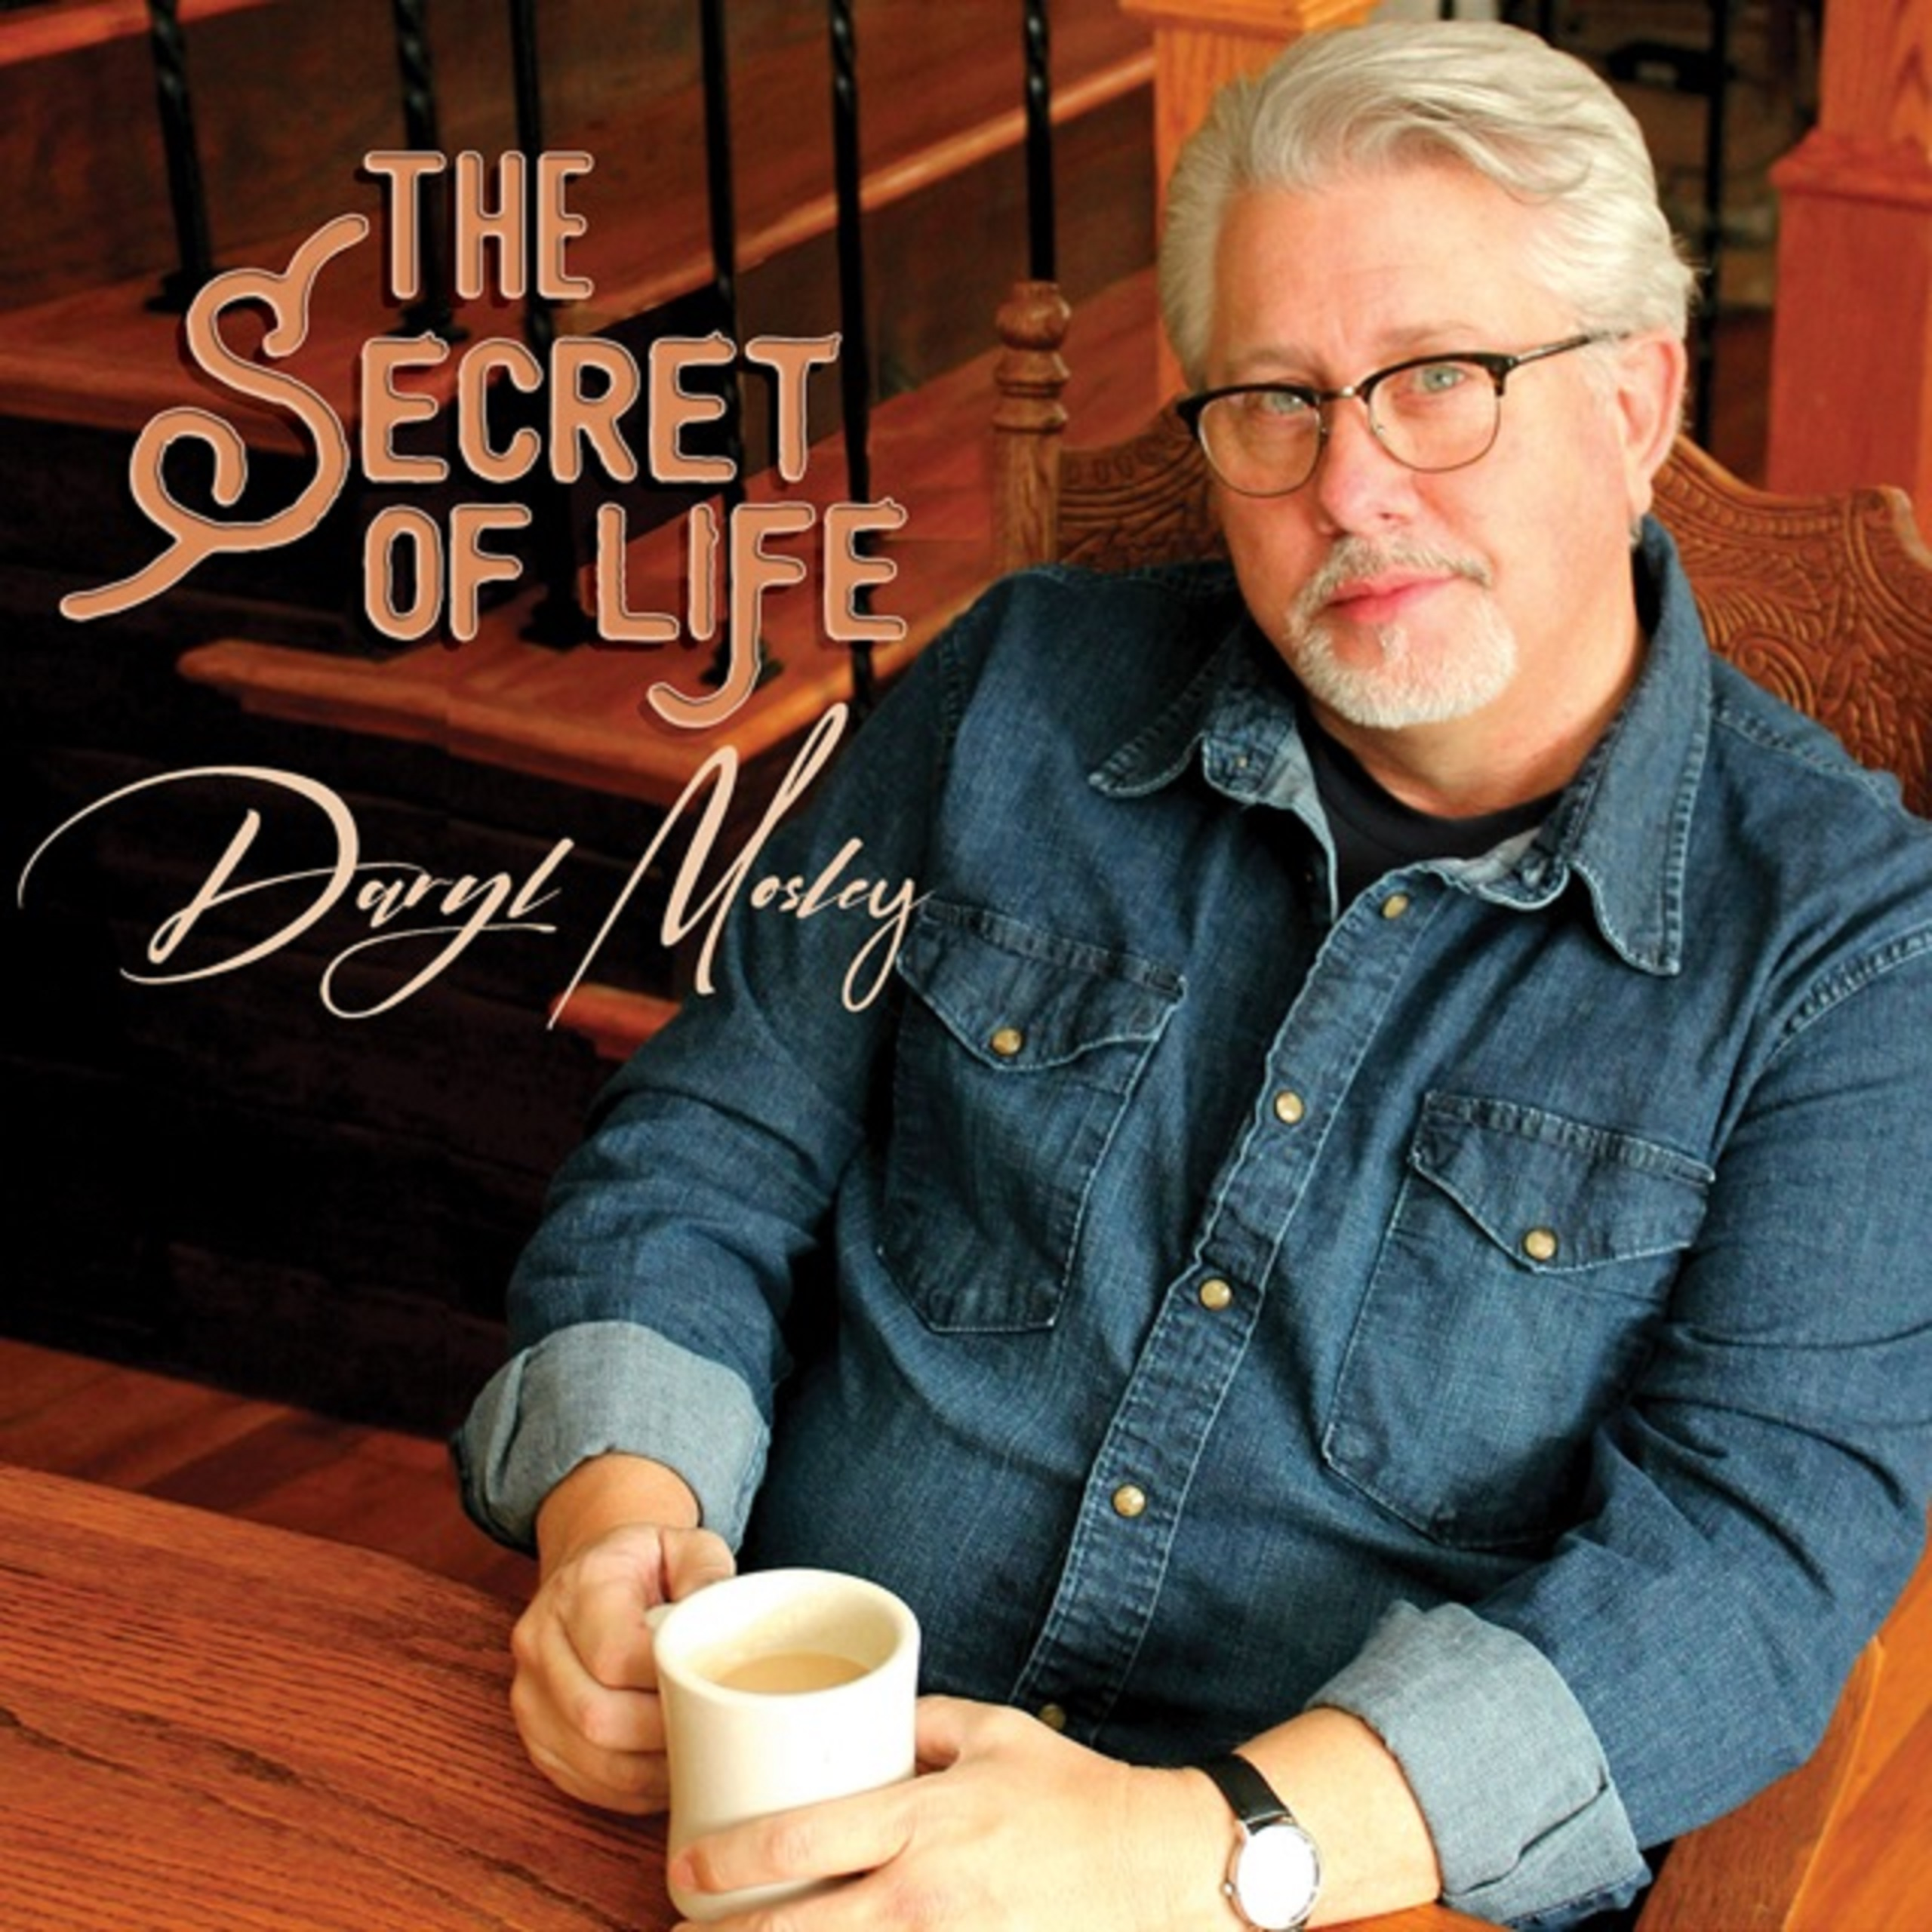 Daryl Mosley Reveals 'The Secret Of Life' With Debut Solo Album